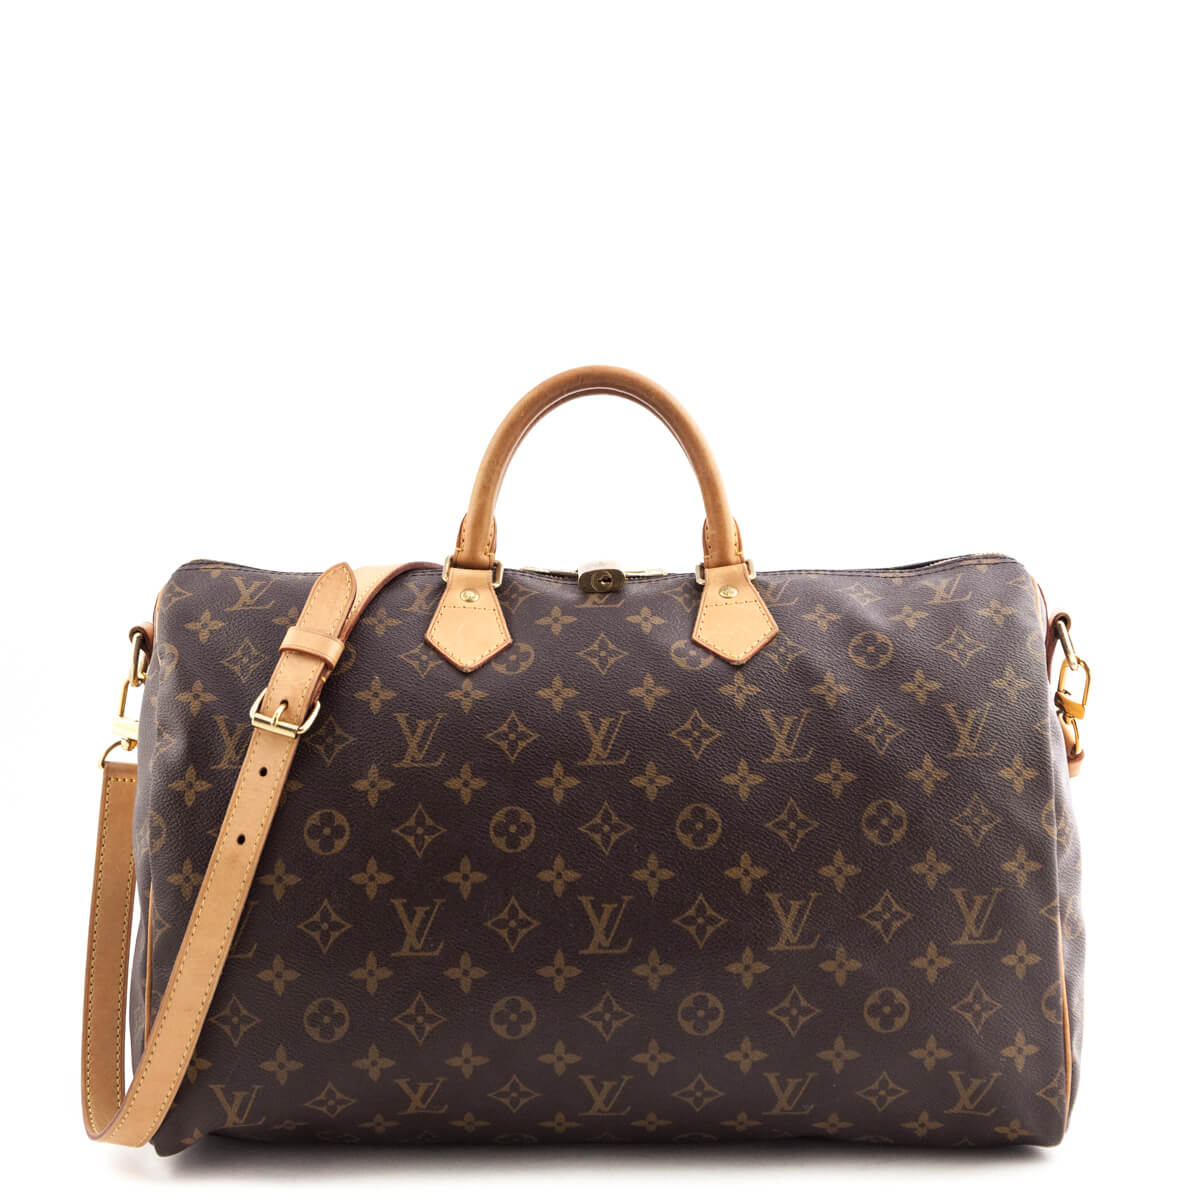 dd6a293aca07 Louis Vuitton Monogram Speedy 40 Bandouliere - LOVE that BAG - Preowned  Authentic Designer Handbags ...